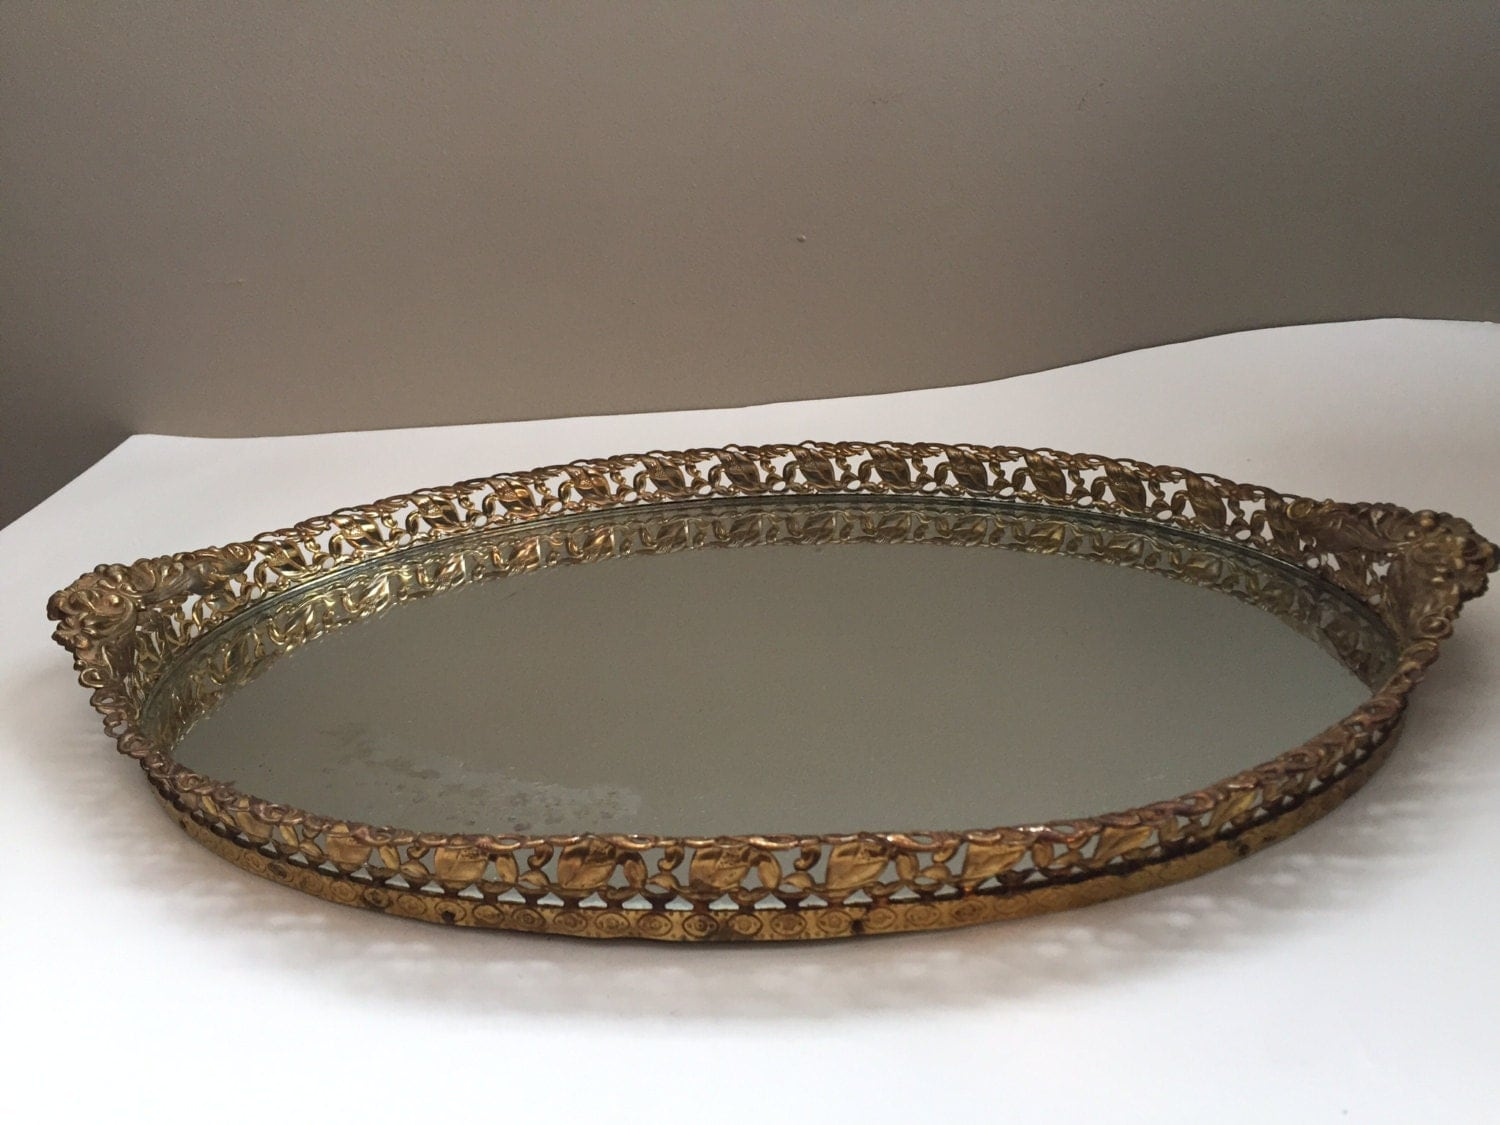 Vintage vanity tray 18 inch oval mirrored vanity tray with a for Mirrored bathroom tray